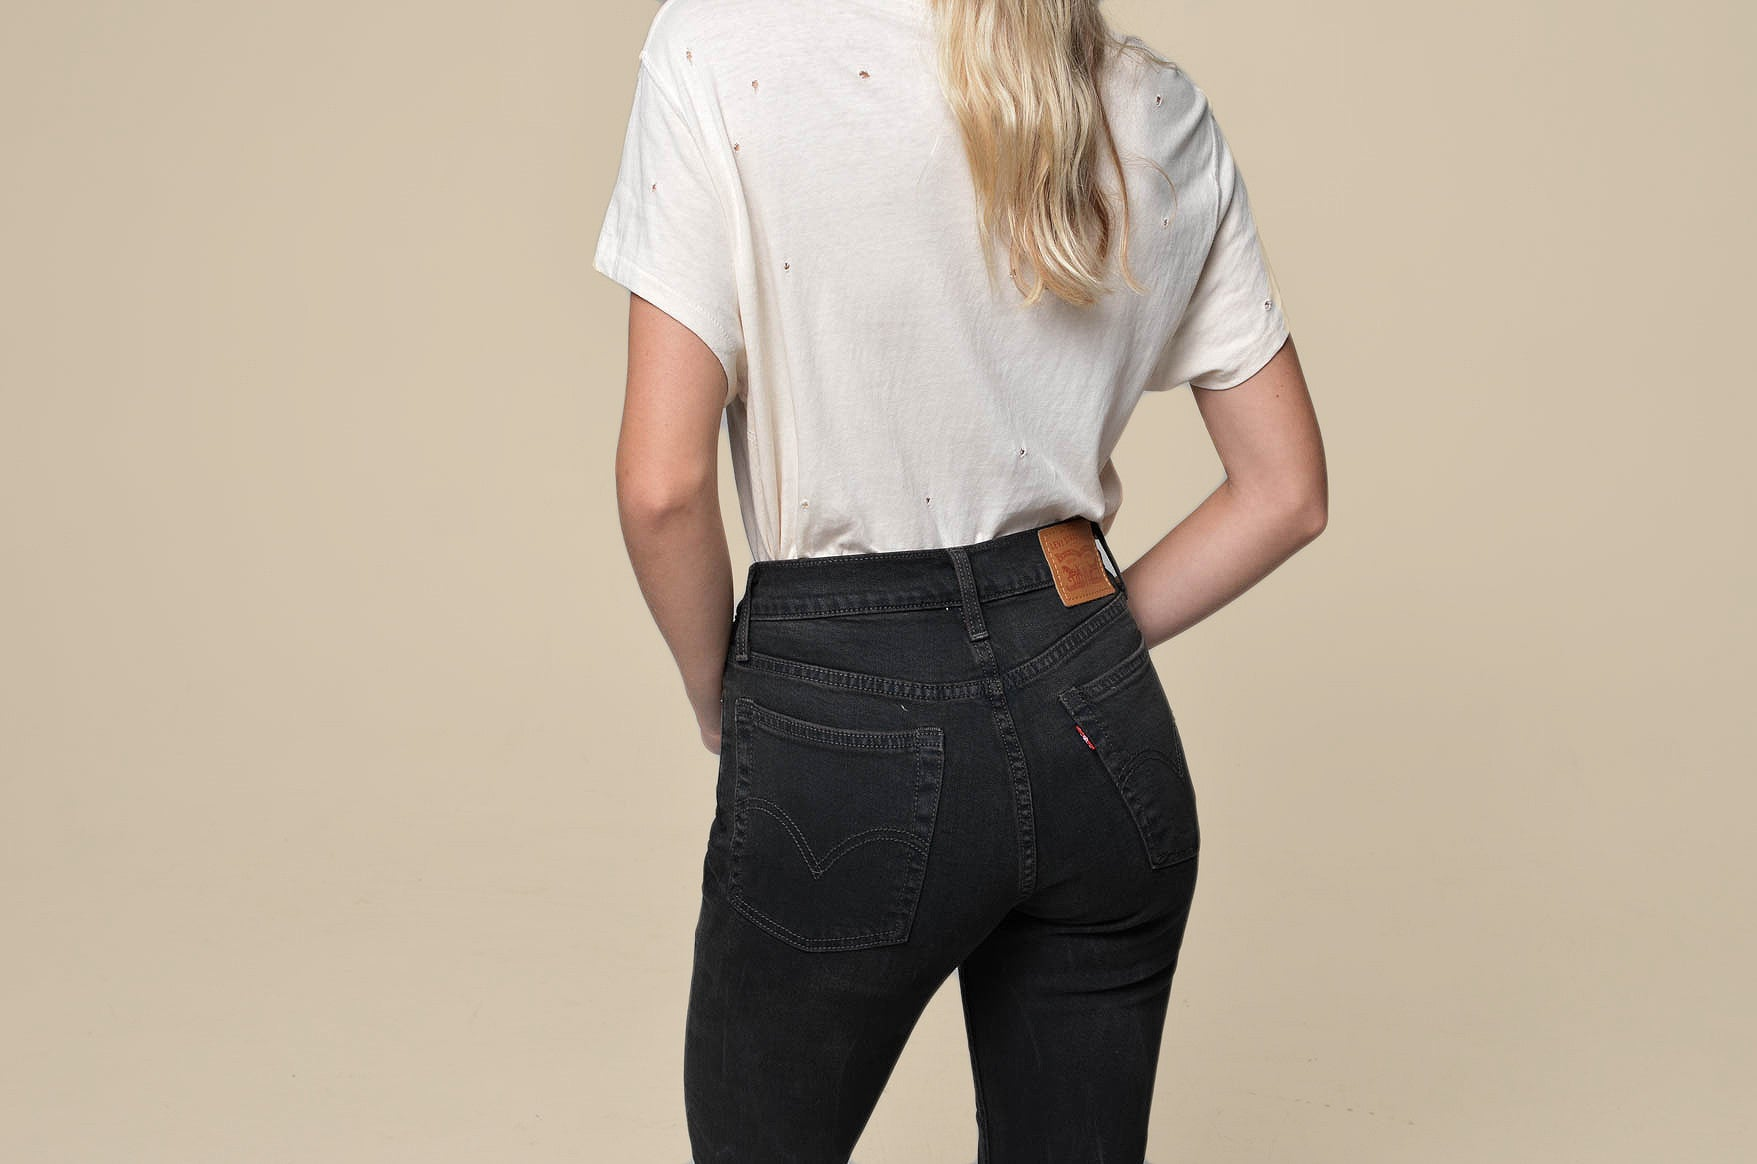 Wedgie Icon Fit - Levi's - 4